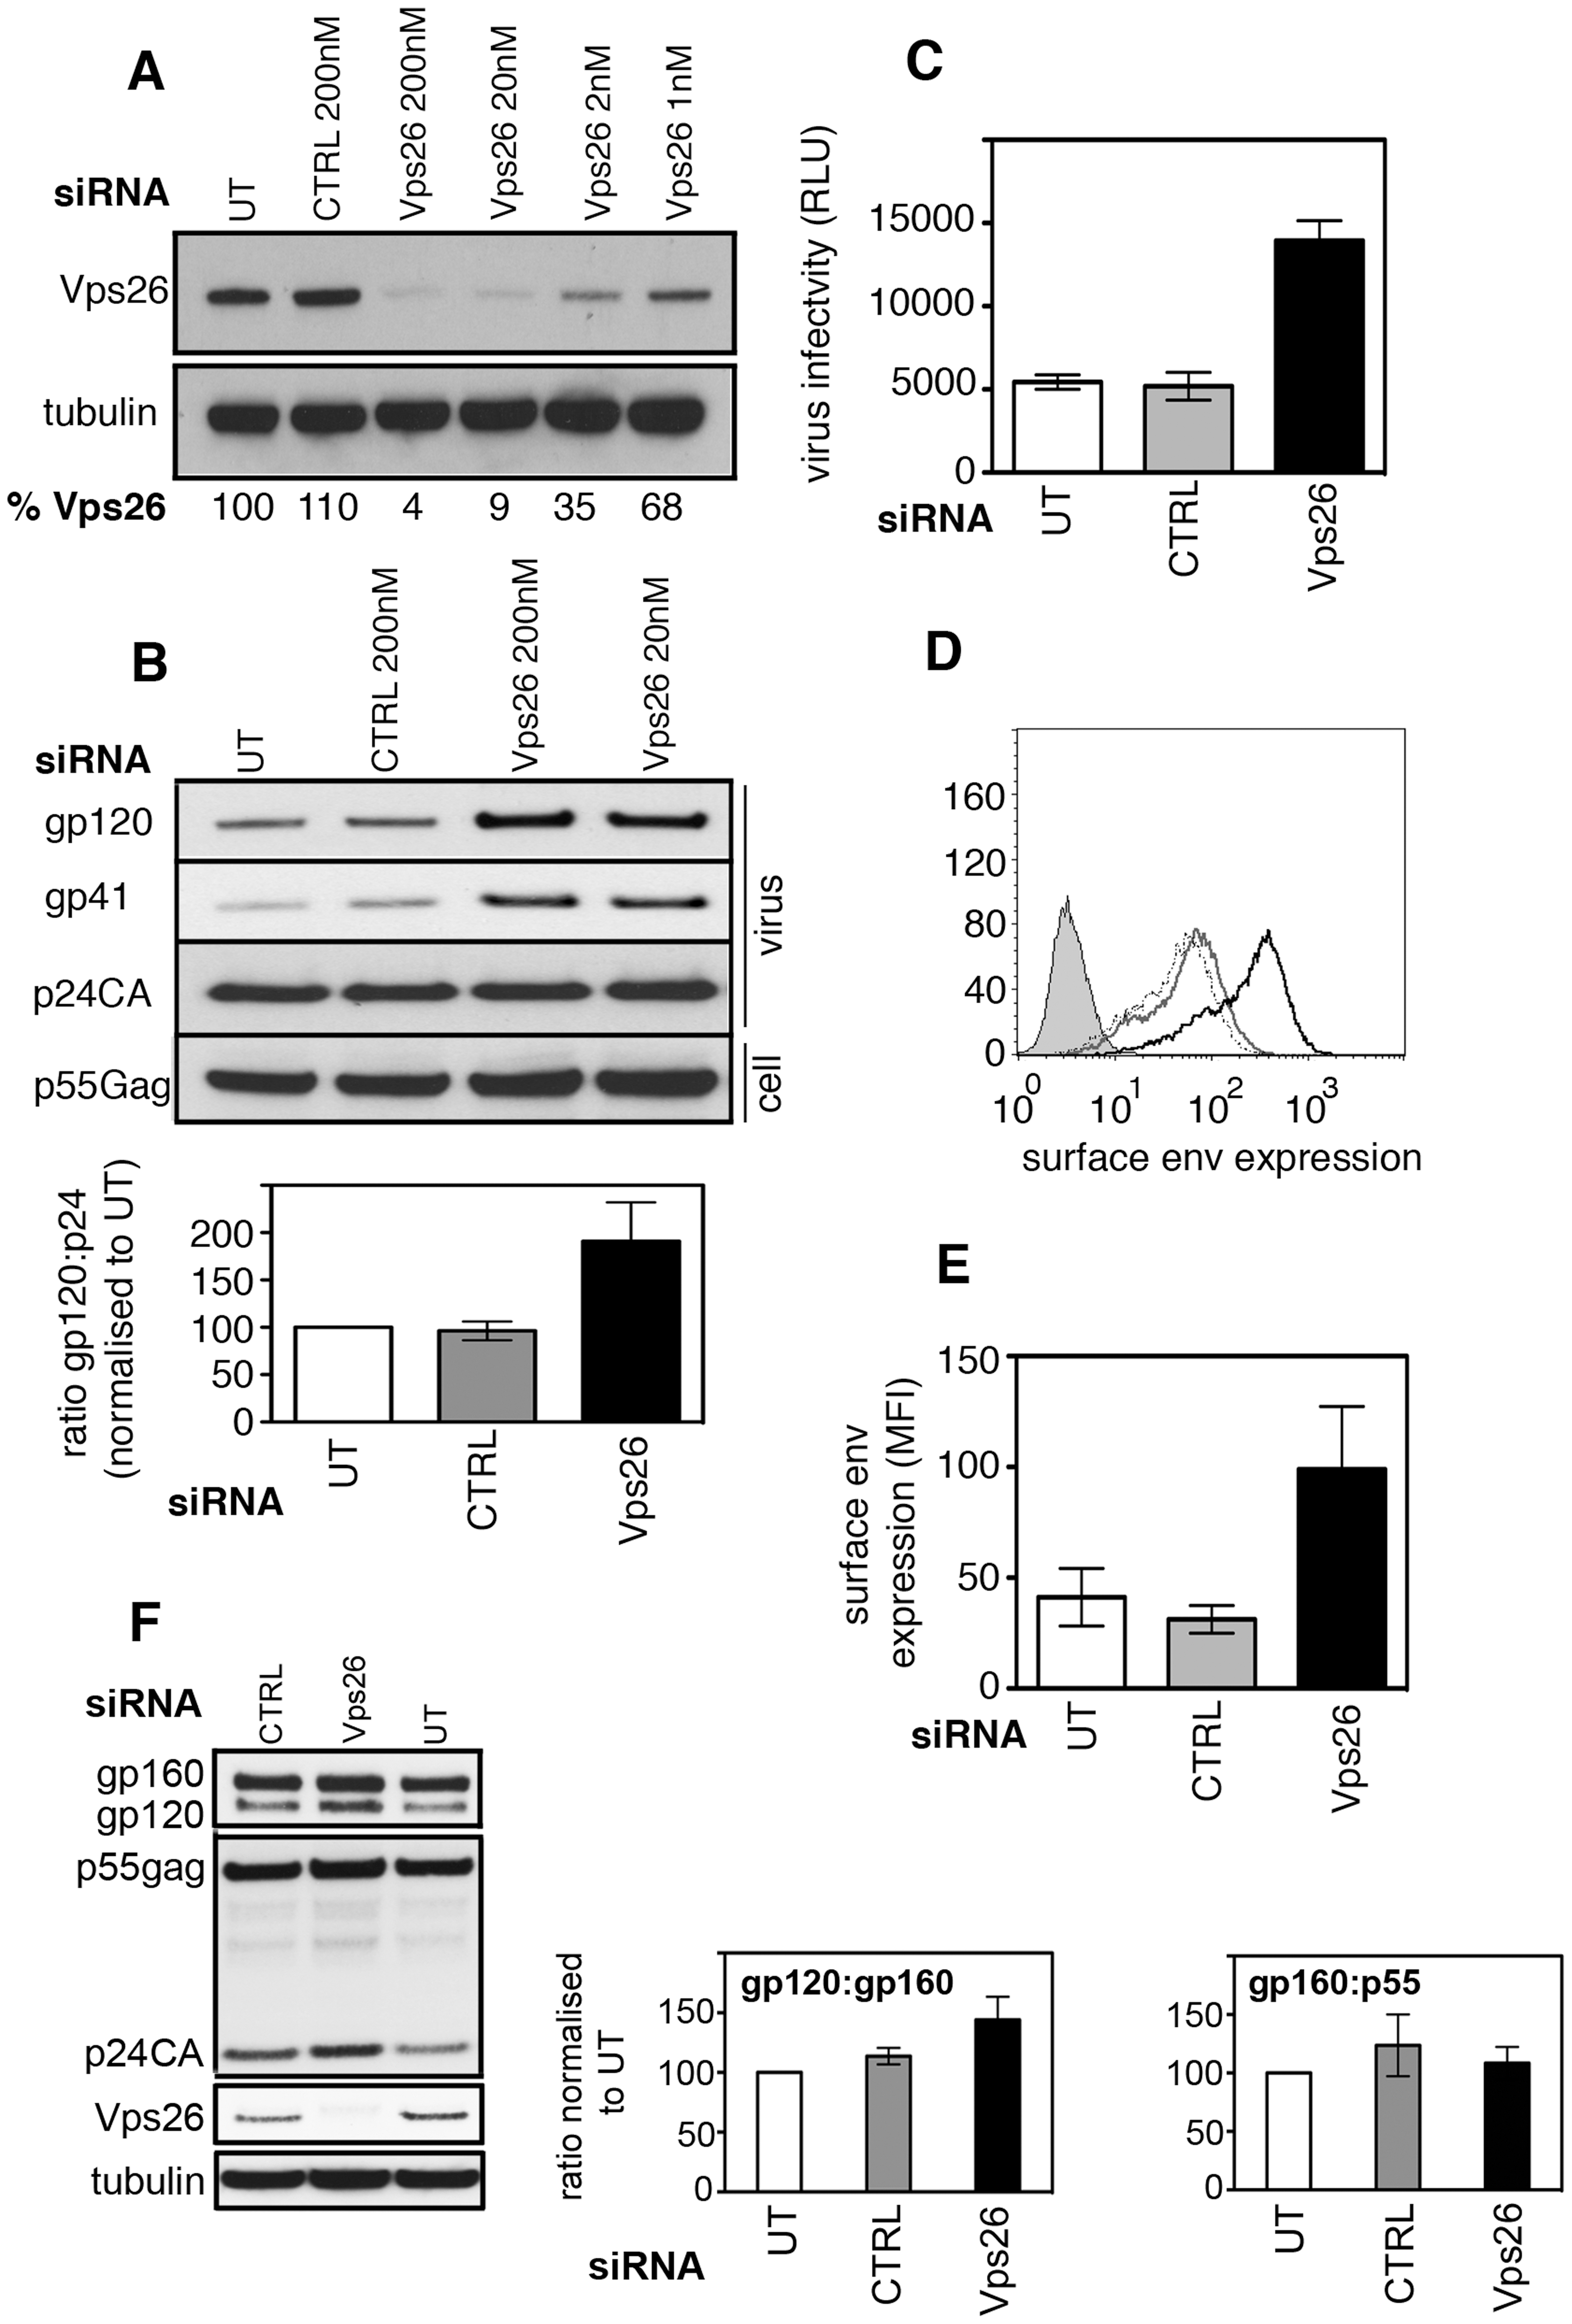 Vps26 depletion increases plasma membrane expression of HIV-1 Env and incorporation into viral particles.